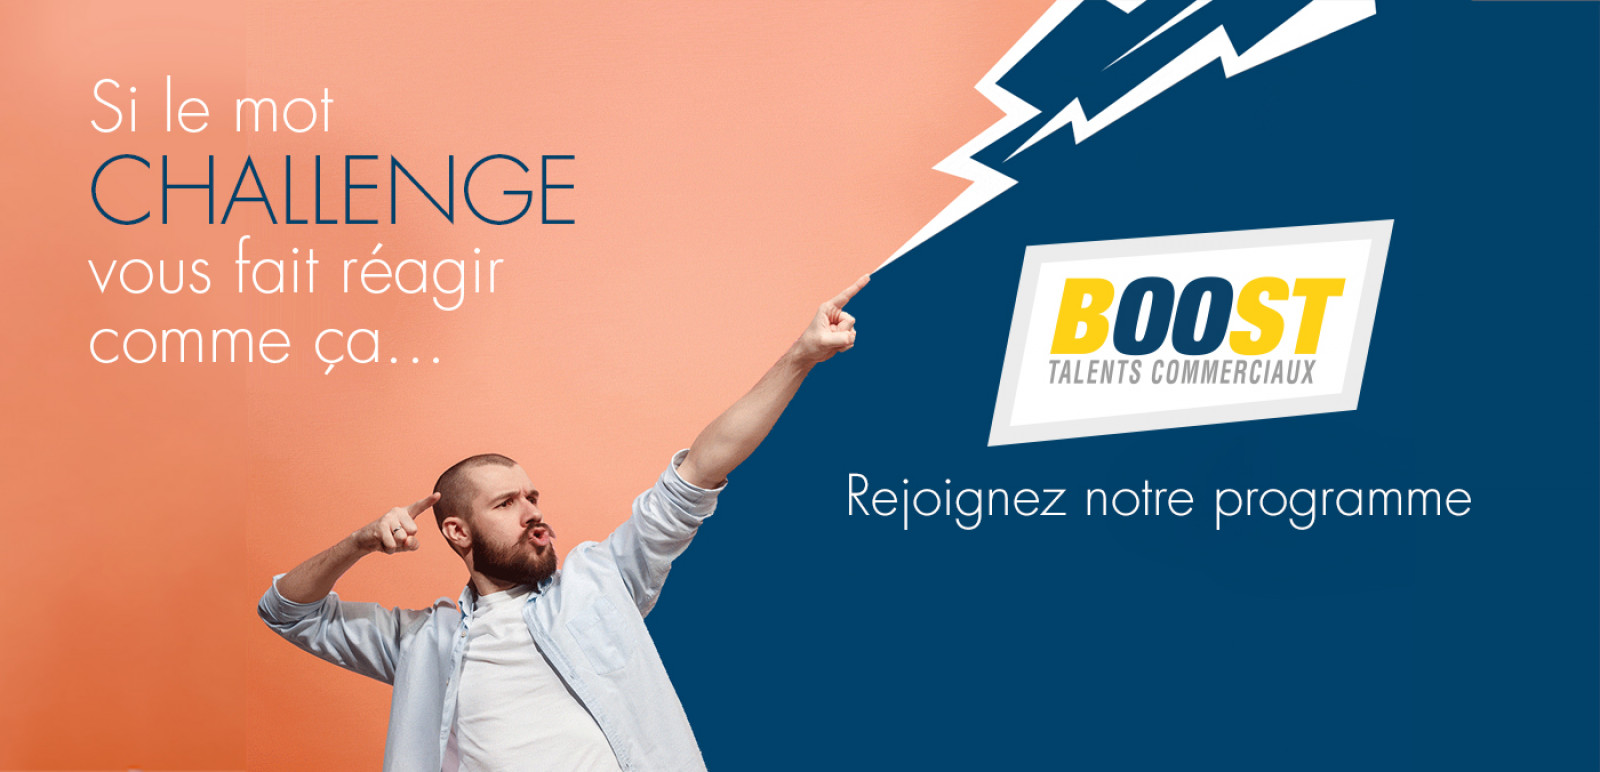 BOOST - Talents commerciaux